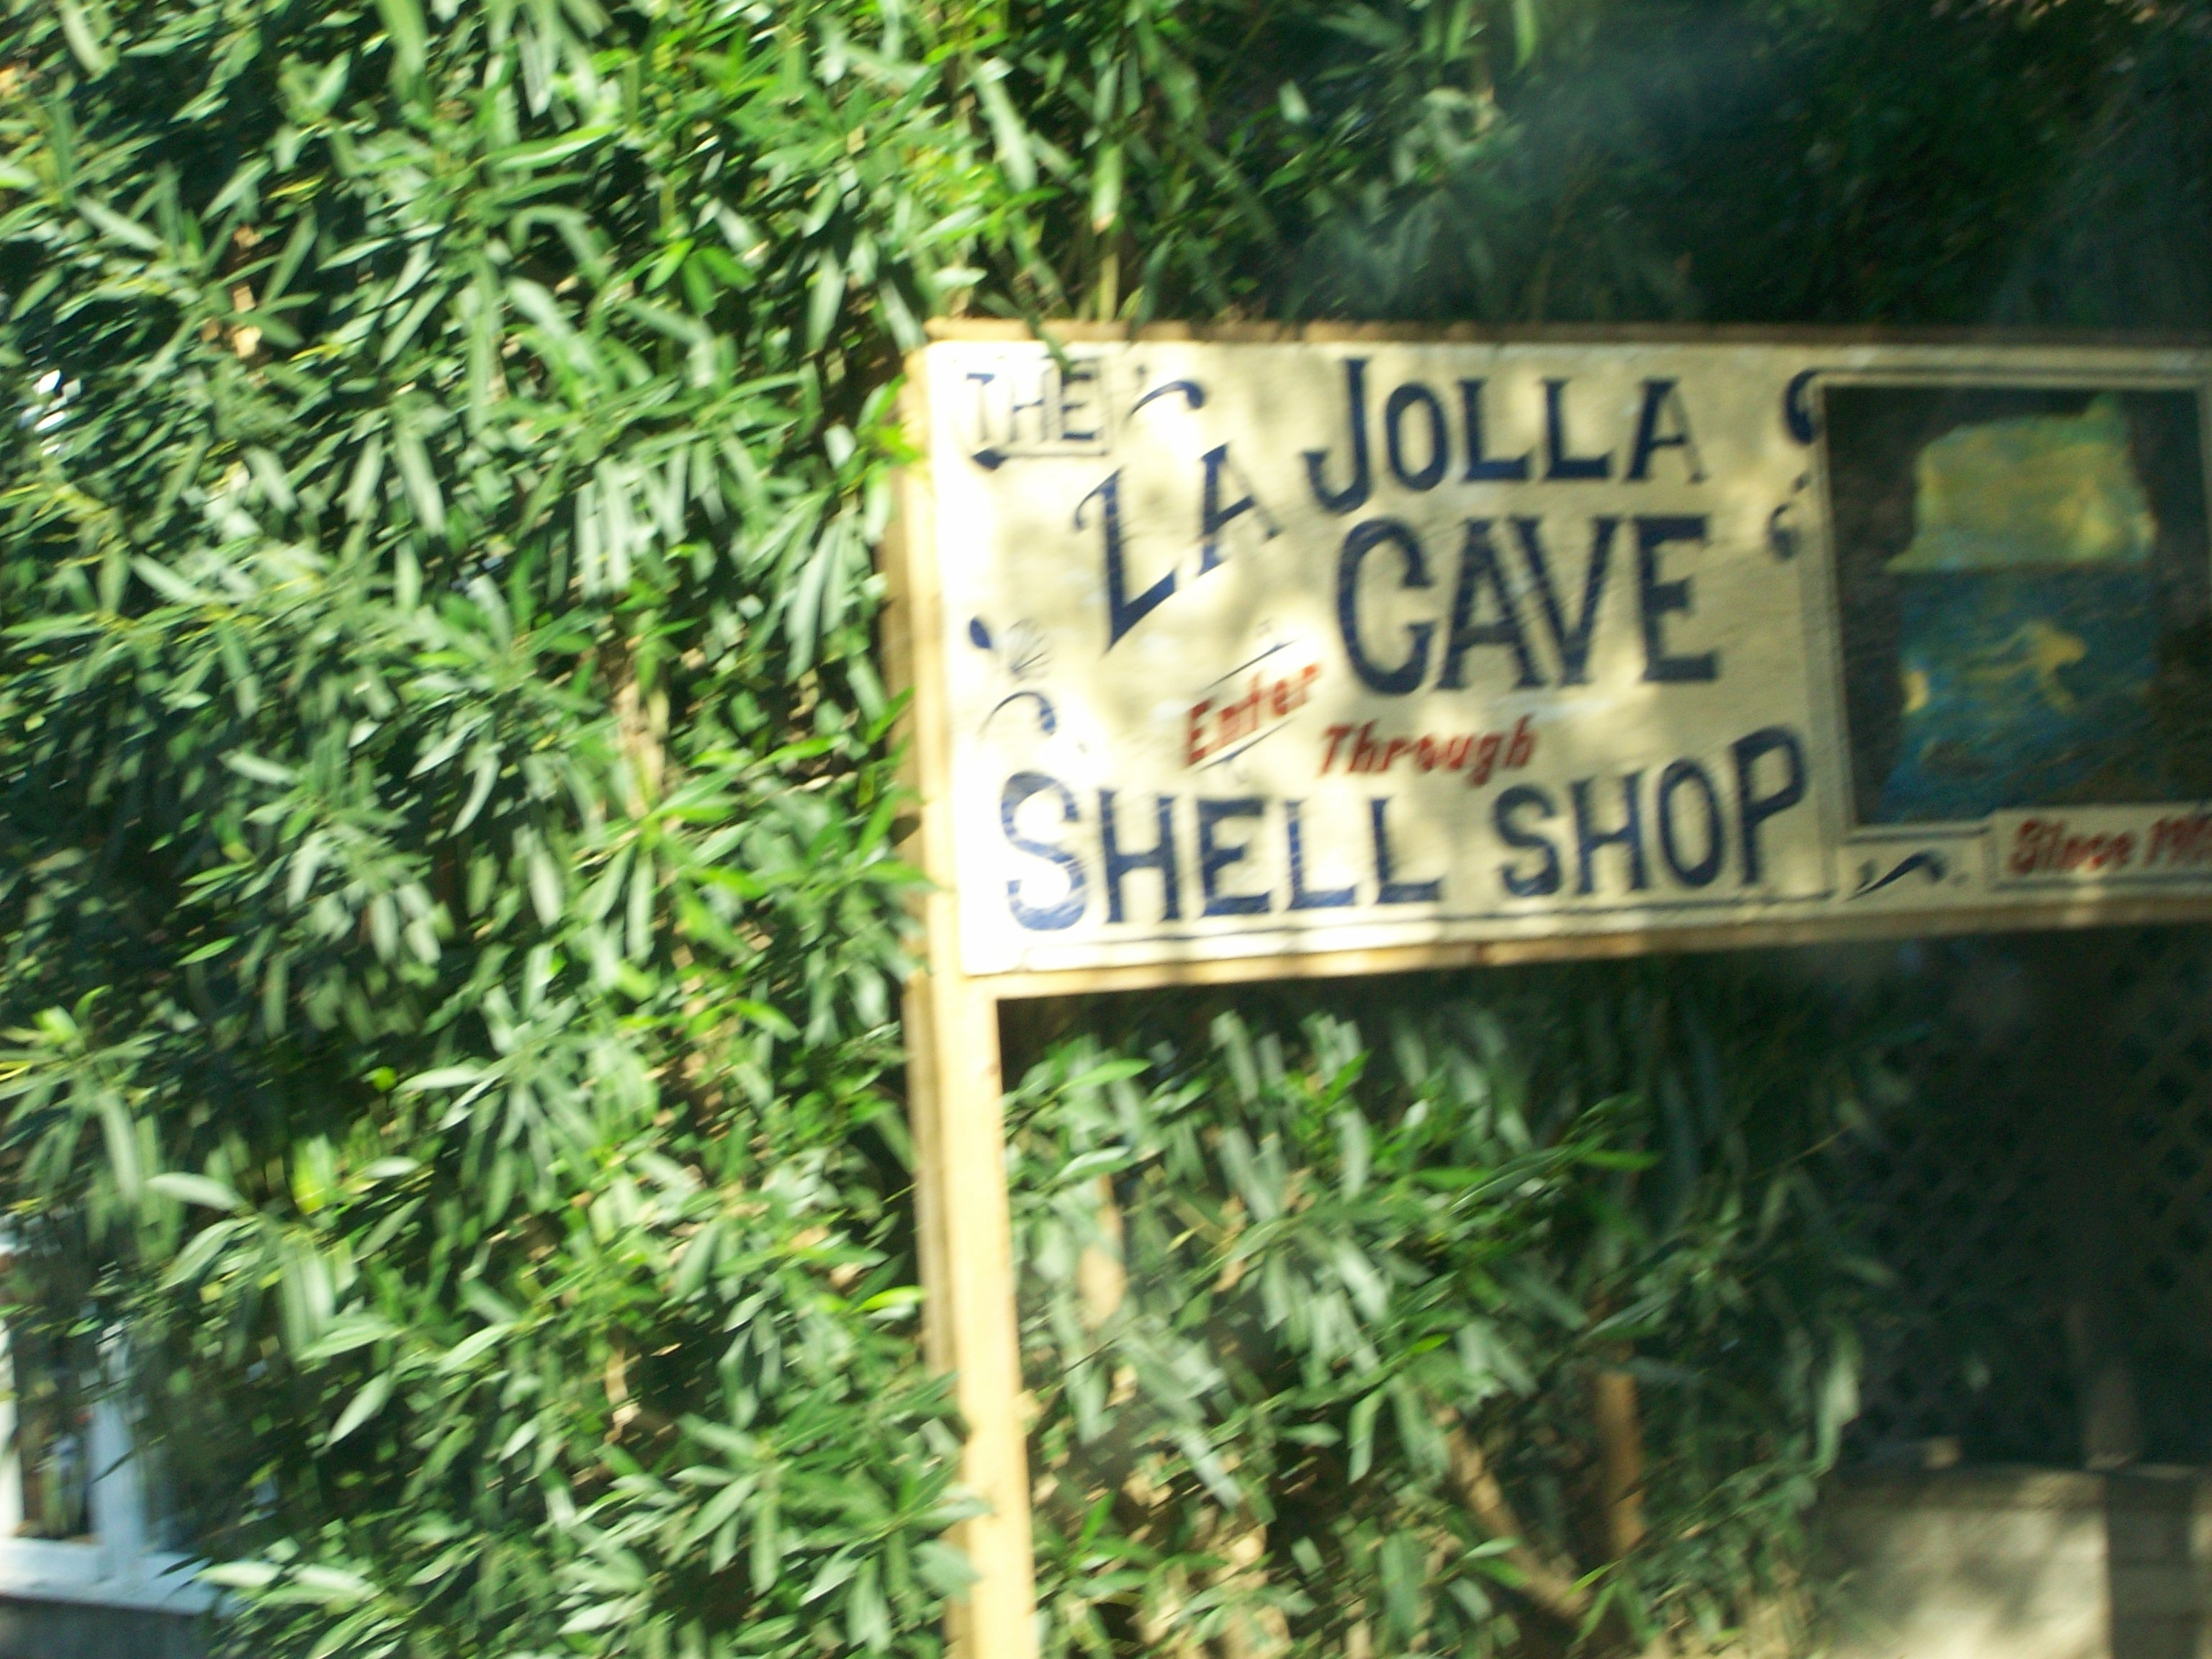 La Jolla Cave Shop sign.